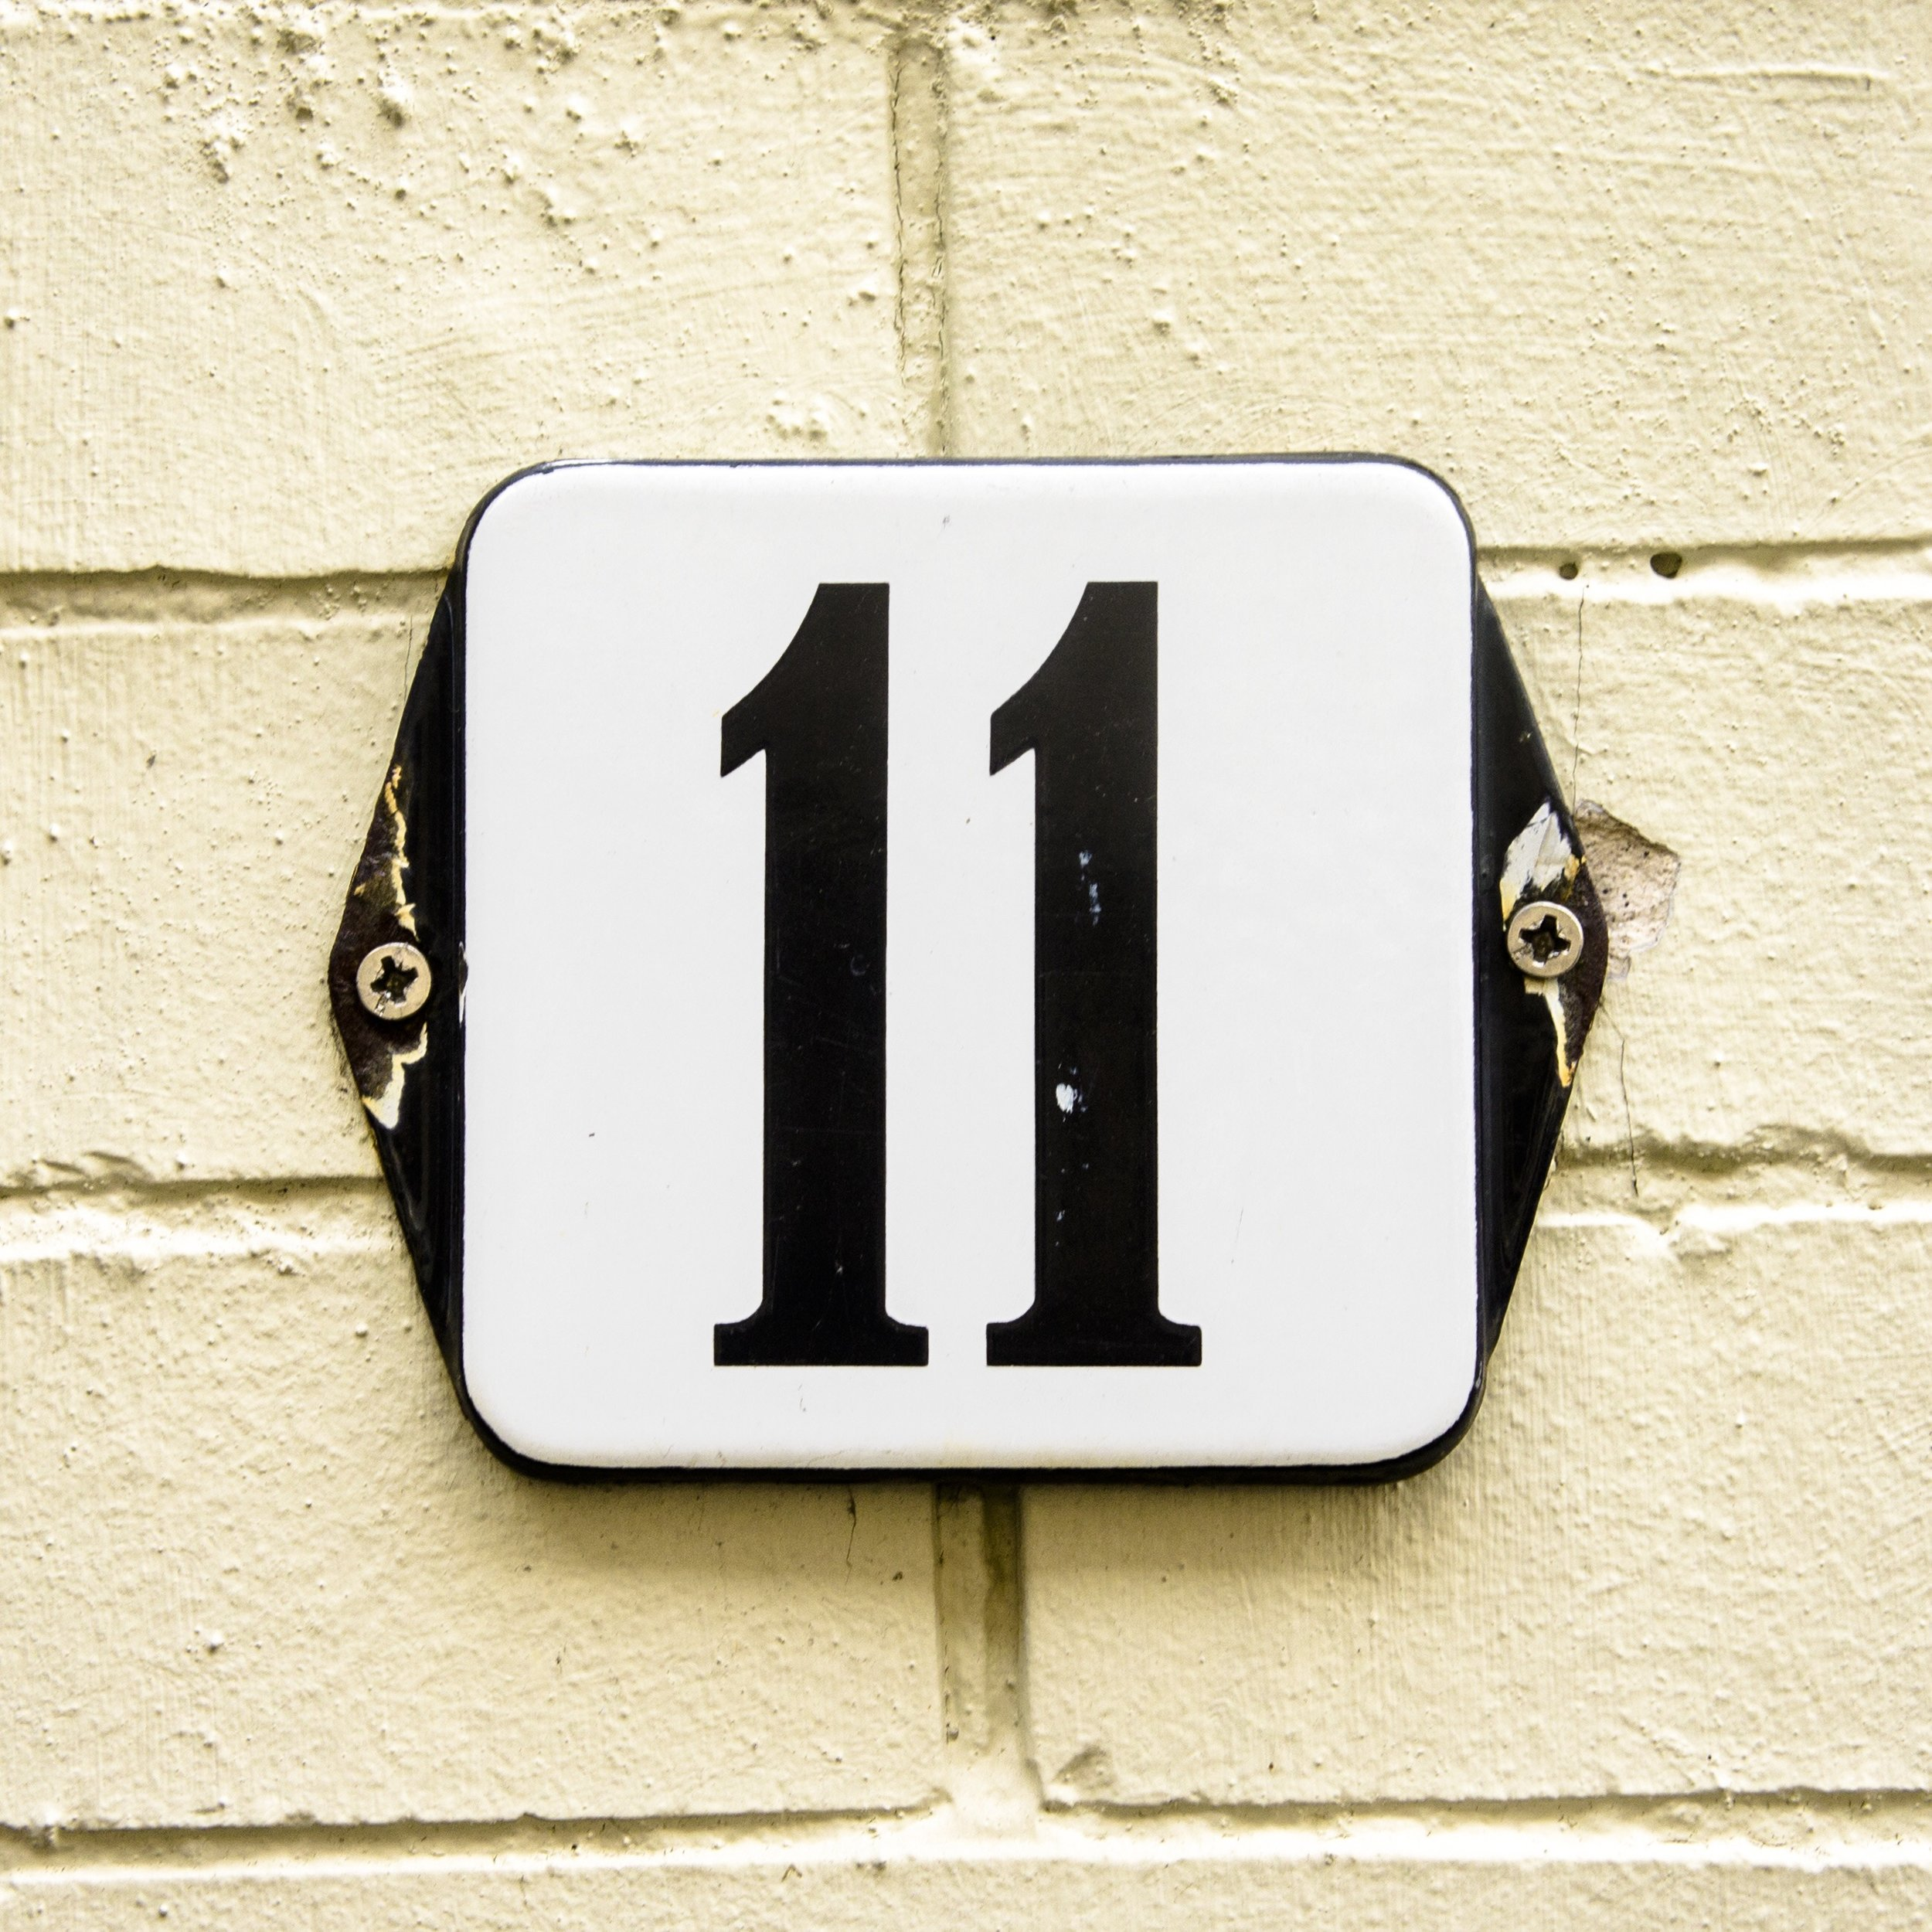 Number 11 sign outside house